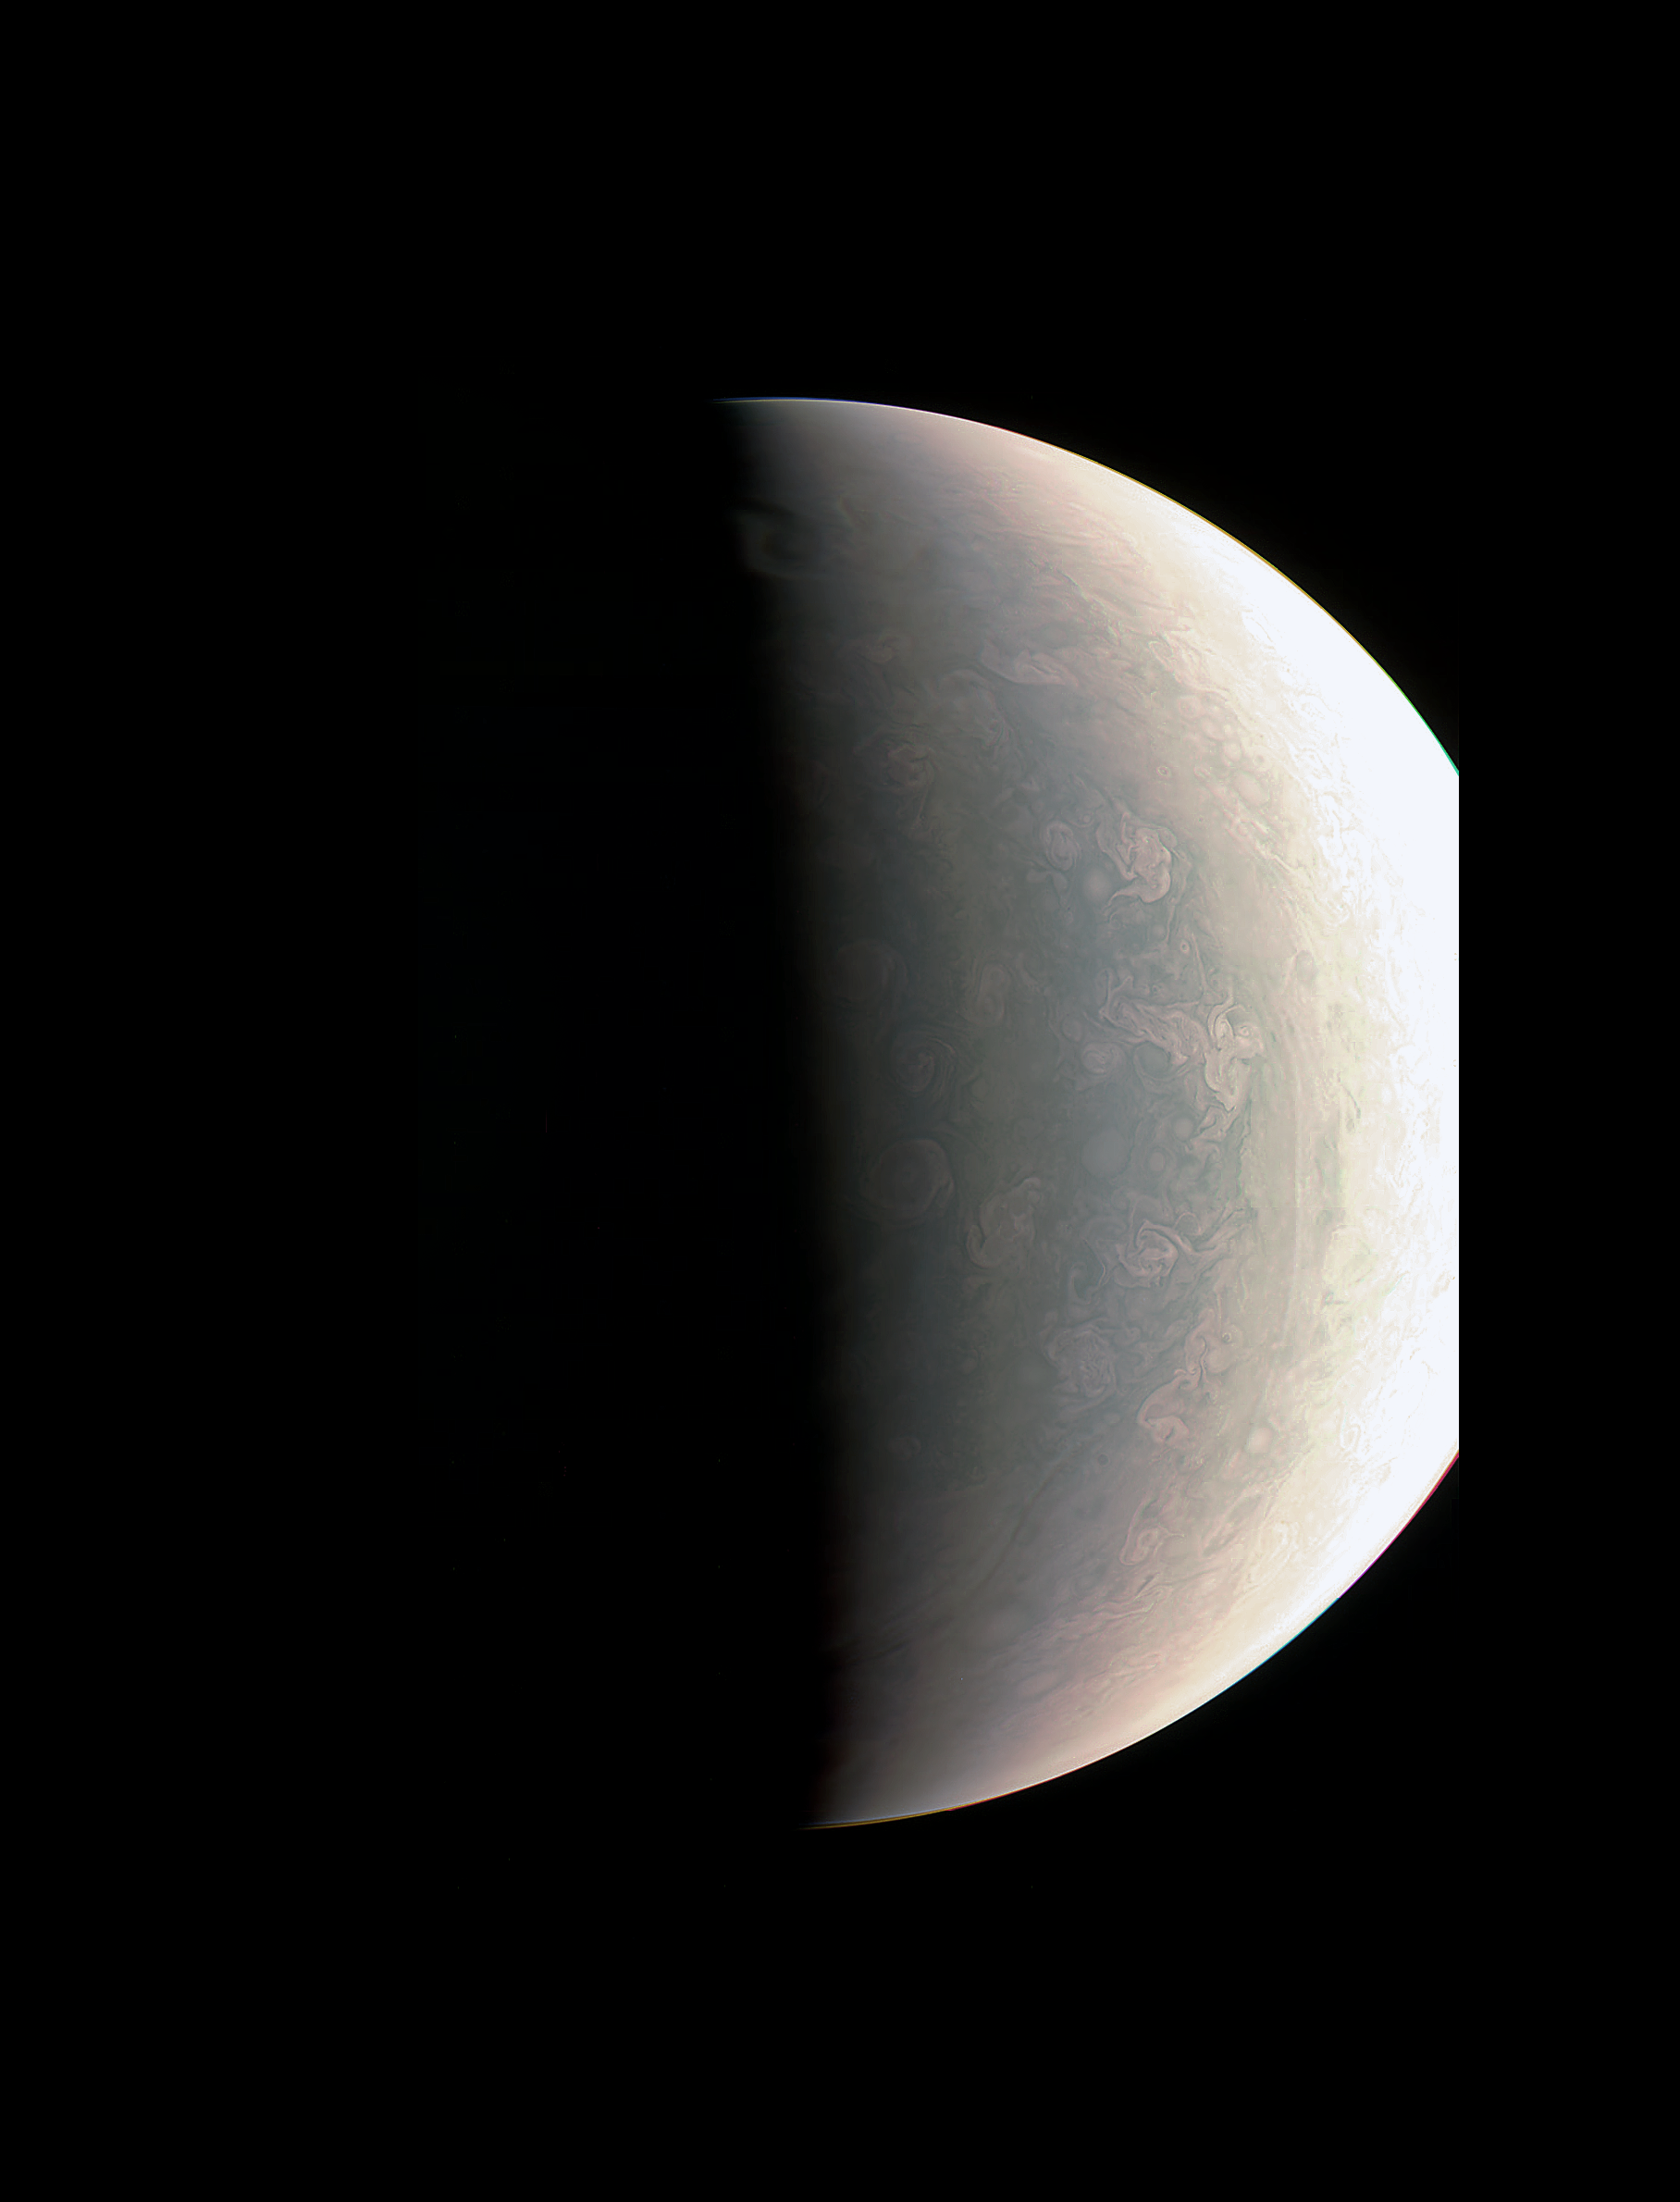 Juno was about 48,000 miles (78,000 kilometers) above Jupiter's polar cloud tops when it captured this view, showing storms and weather unlike anywhere else in the solar system. – Image Credits: NASA/JPL-Caltech/SwRI/MSSS